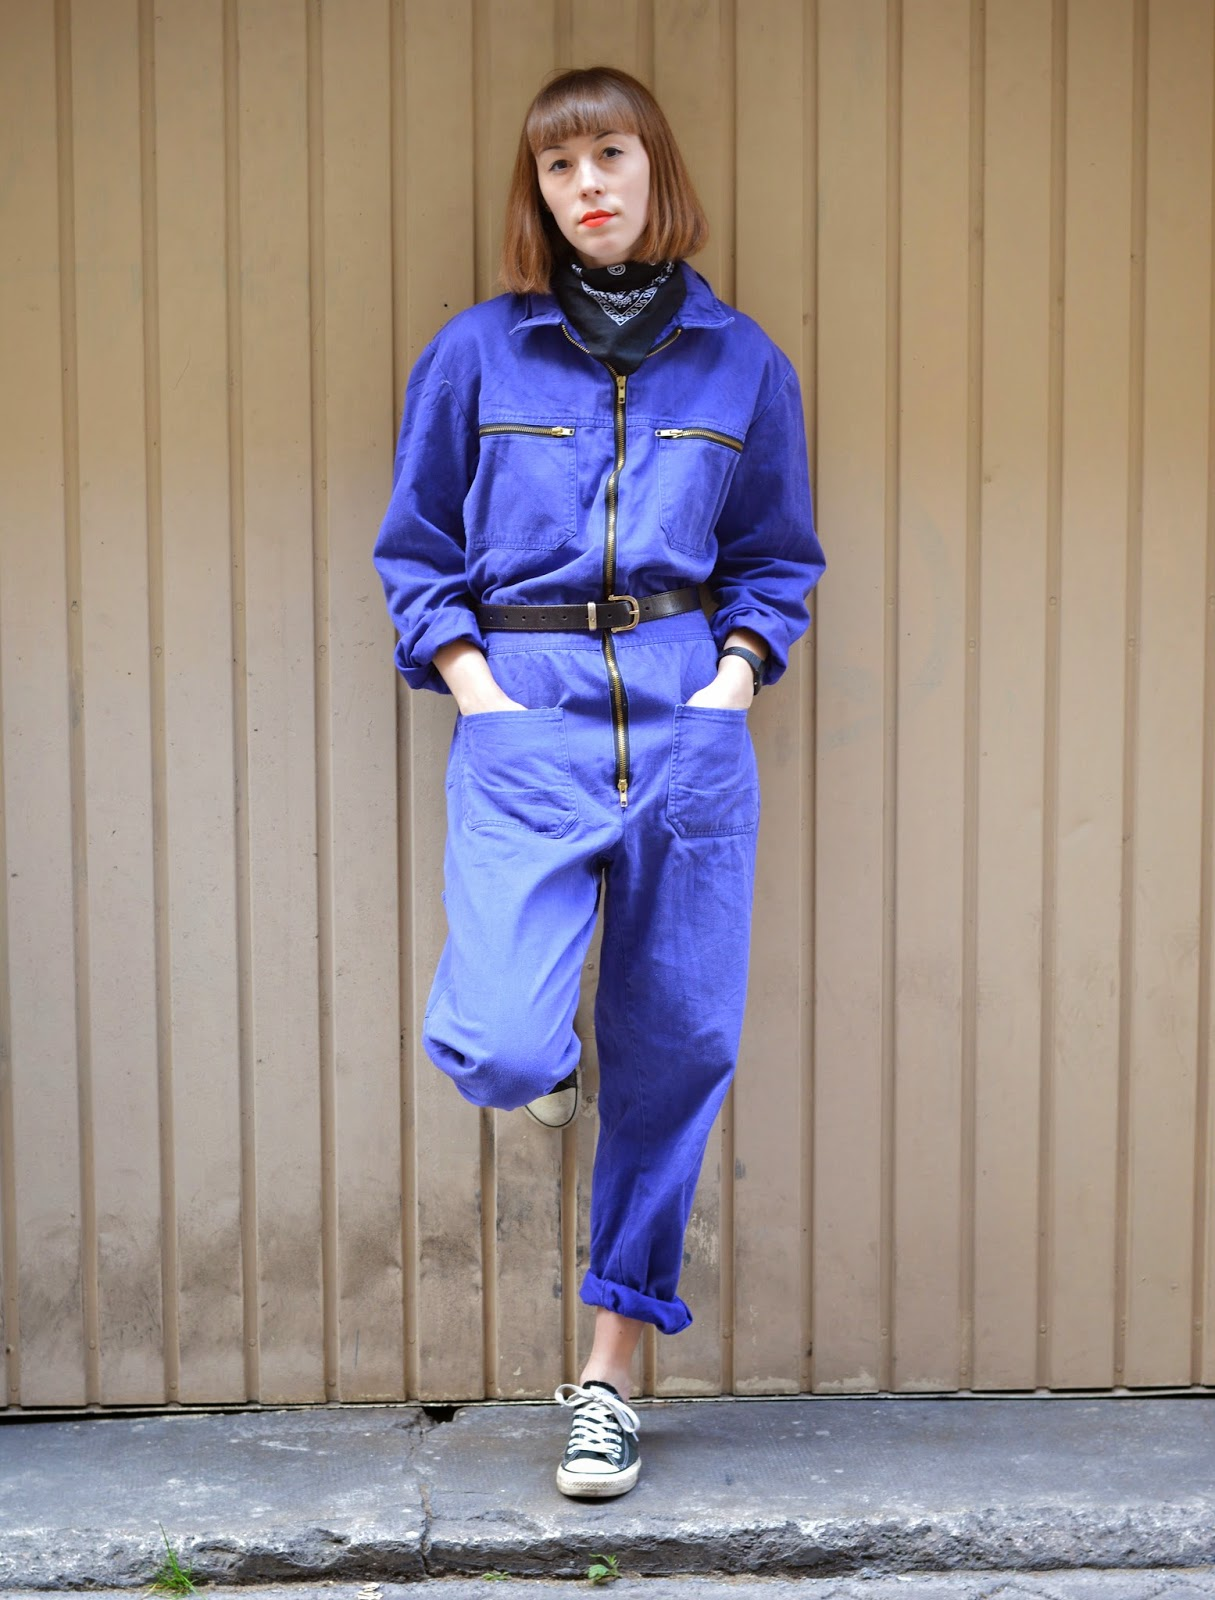 Blue work jumpsuit with bandana and converse